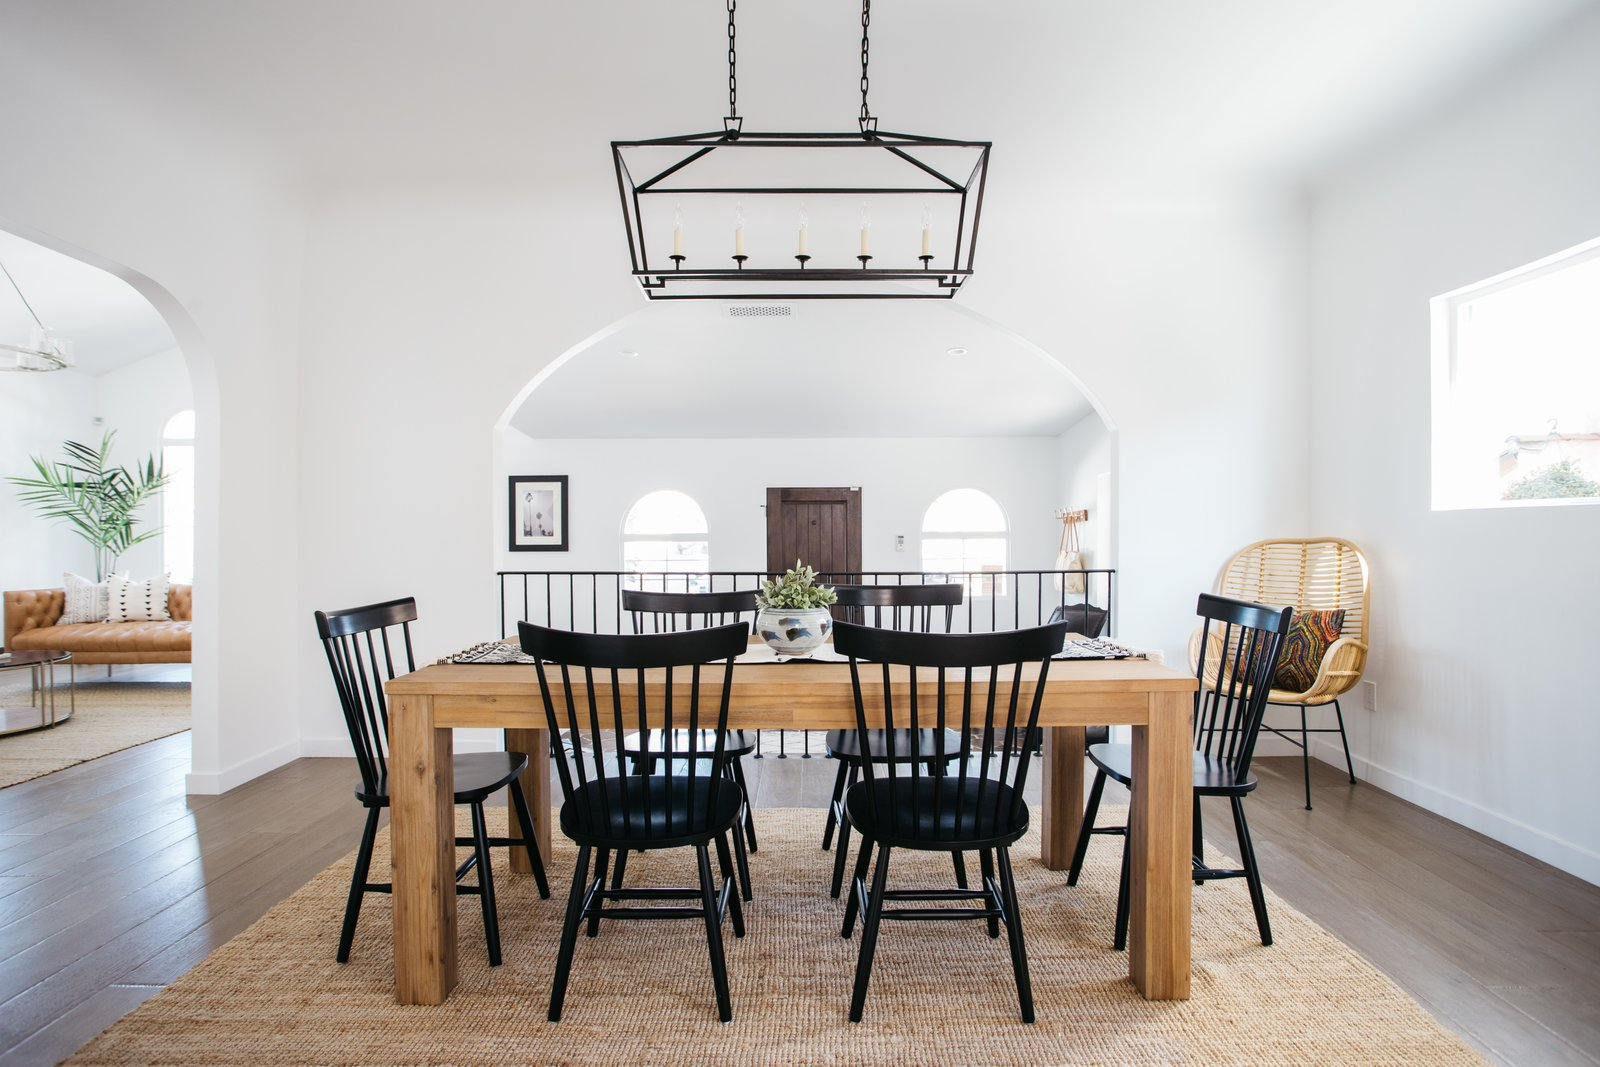 Dining Room, Chair, Table, Medium Hardwood Floor, Rug Floor, and Pendant Lighting A formal dining room sits just off the living area and overlooks the entry.    Photo 6 of 20 in An Updated Spanish-Style Abode with an Artist Studio Hits the Market at $1.1M in L.A.